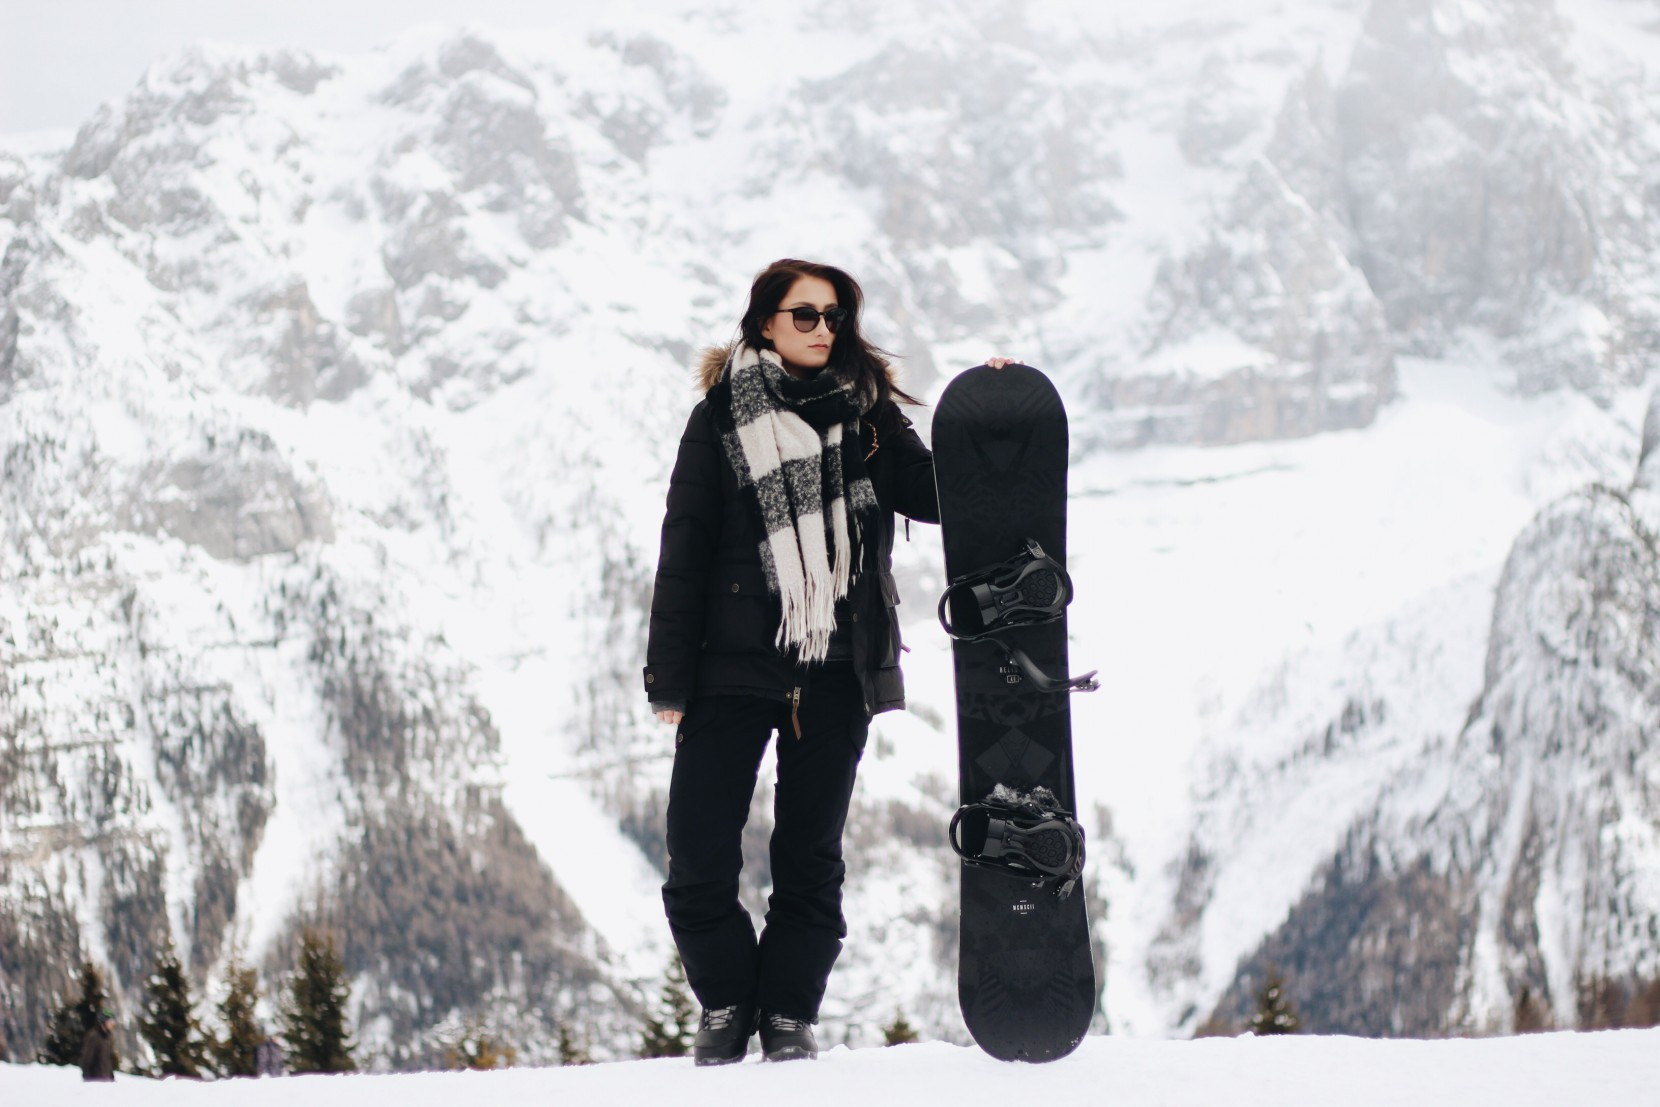 All Black Everything Snowboard Outfit